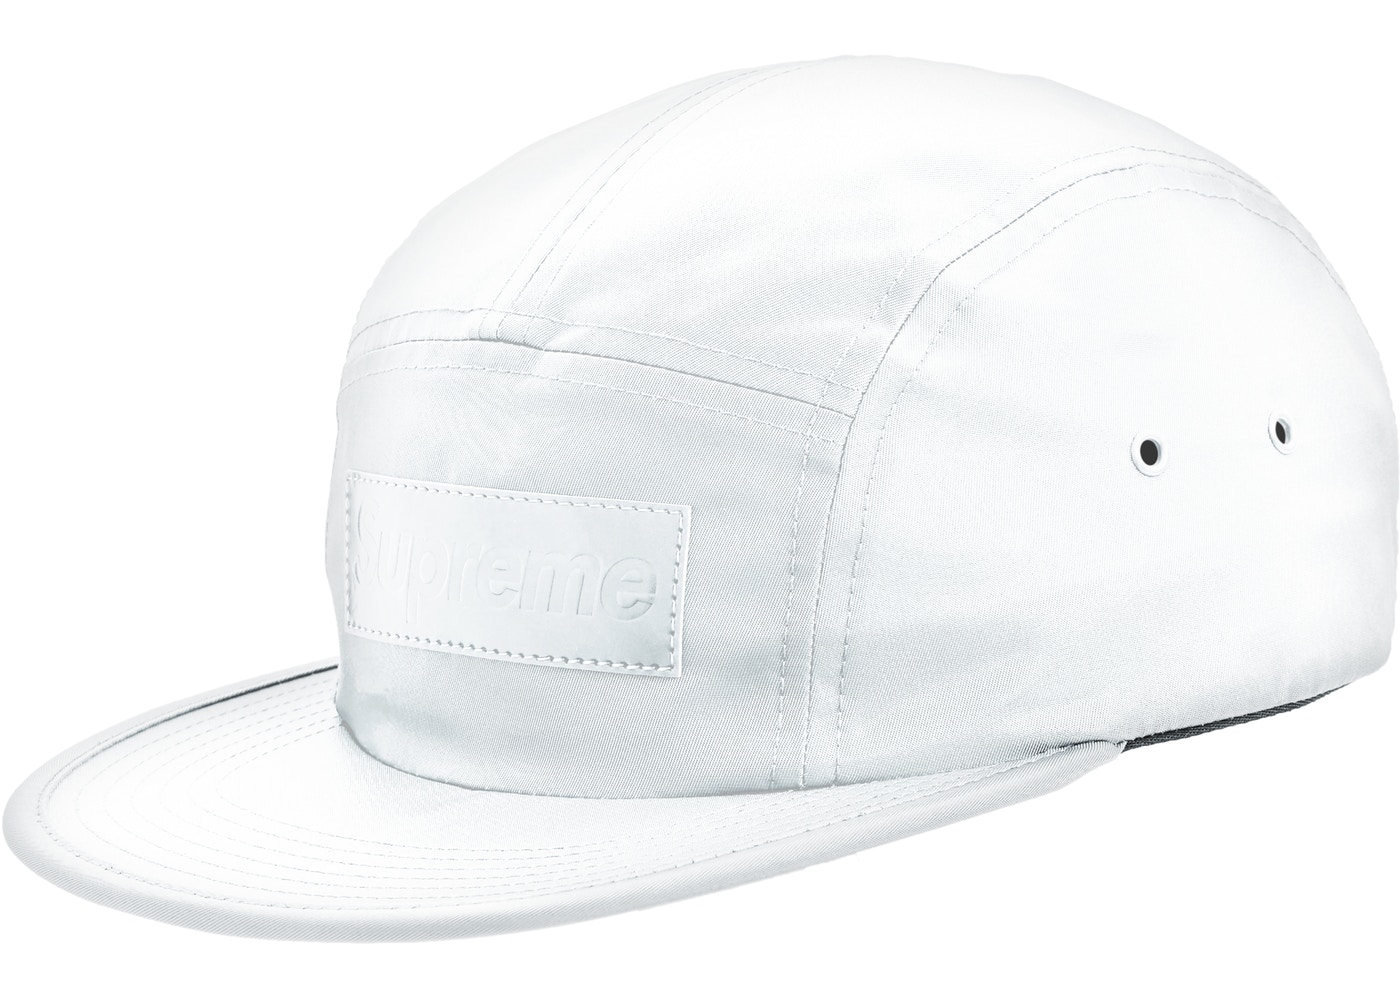 702b78bb Supreme Patent Leather Patch Camp Cap White - FW18